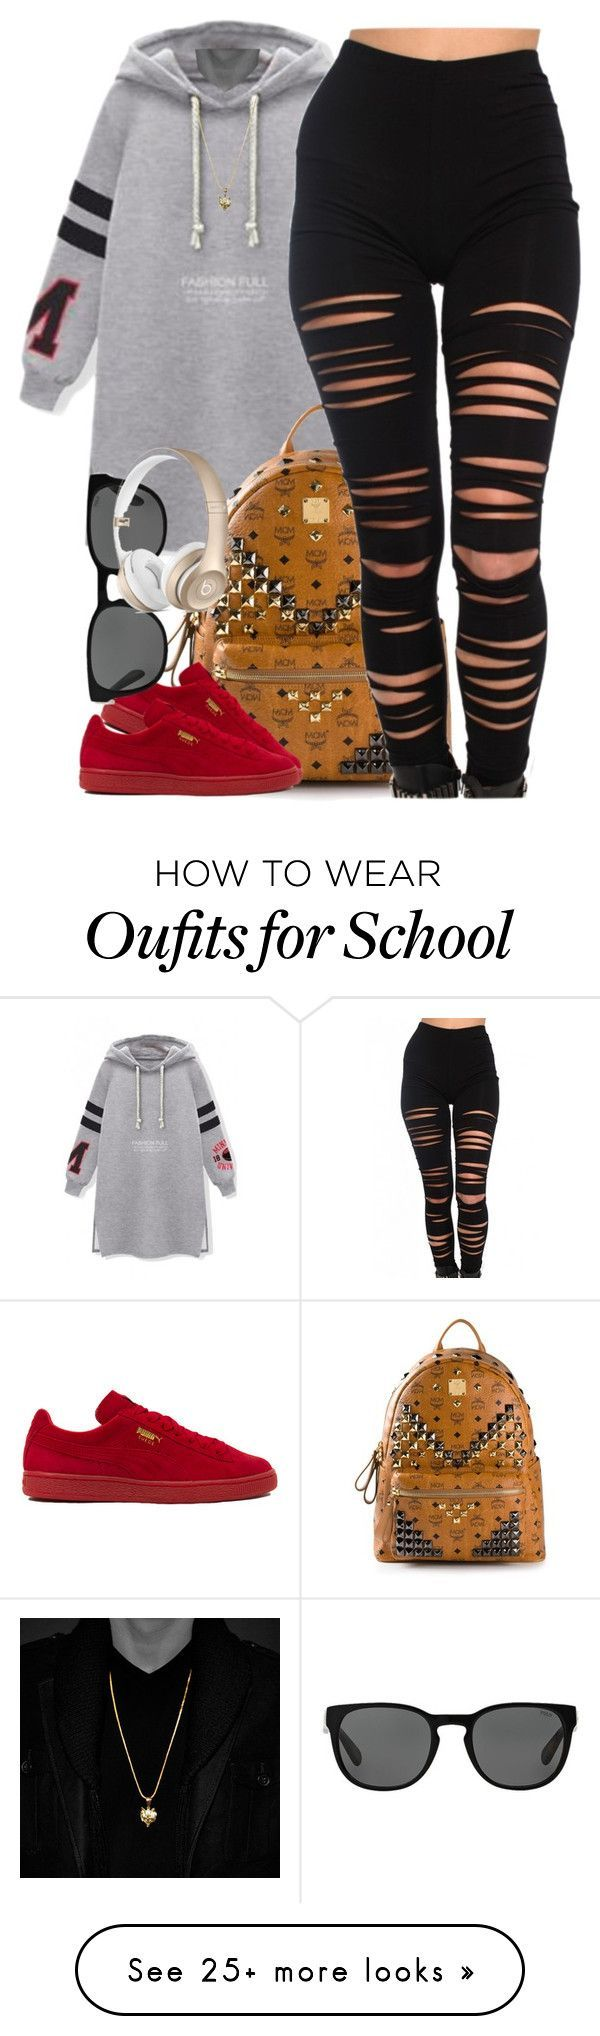 soo tired of school rn by cjasmyne on Polyvore featuring MCM, Akira, Puma and Polo Ralph Lauren